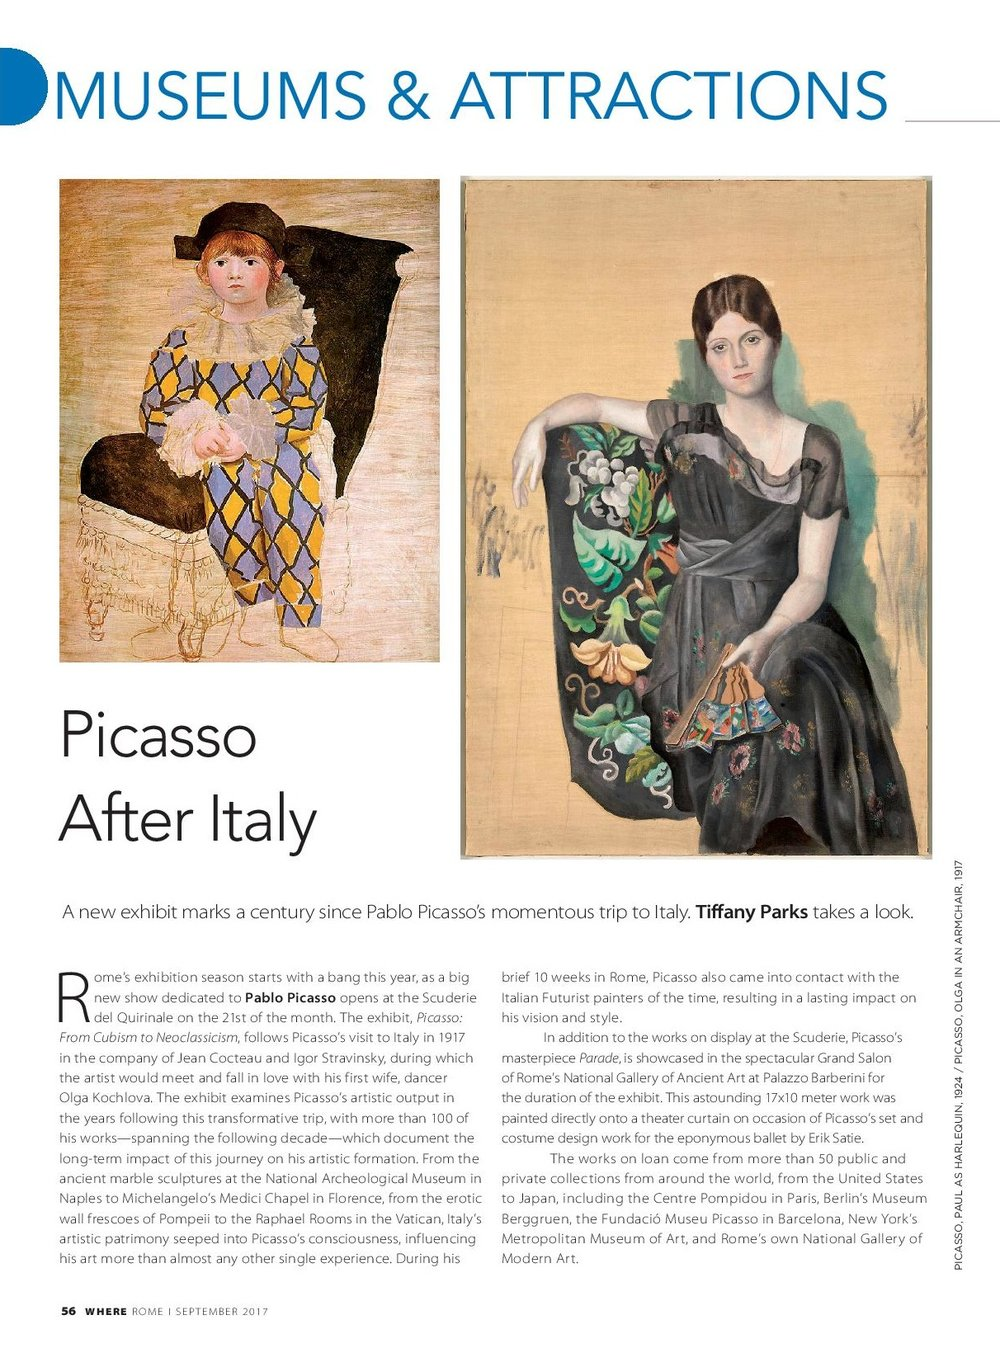 Picasso After Italy, Where Rome, September 2017.jpg